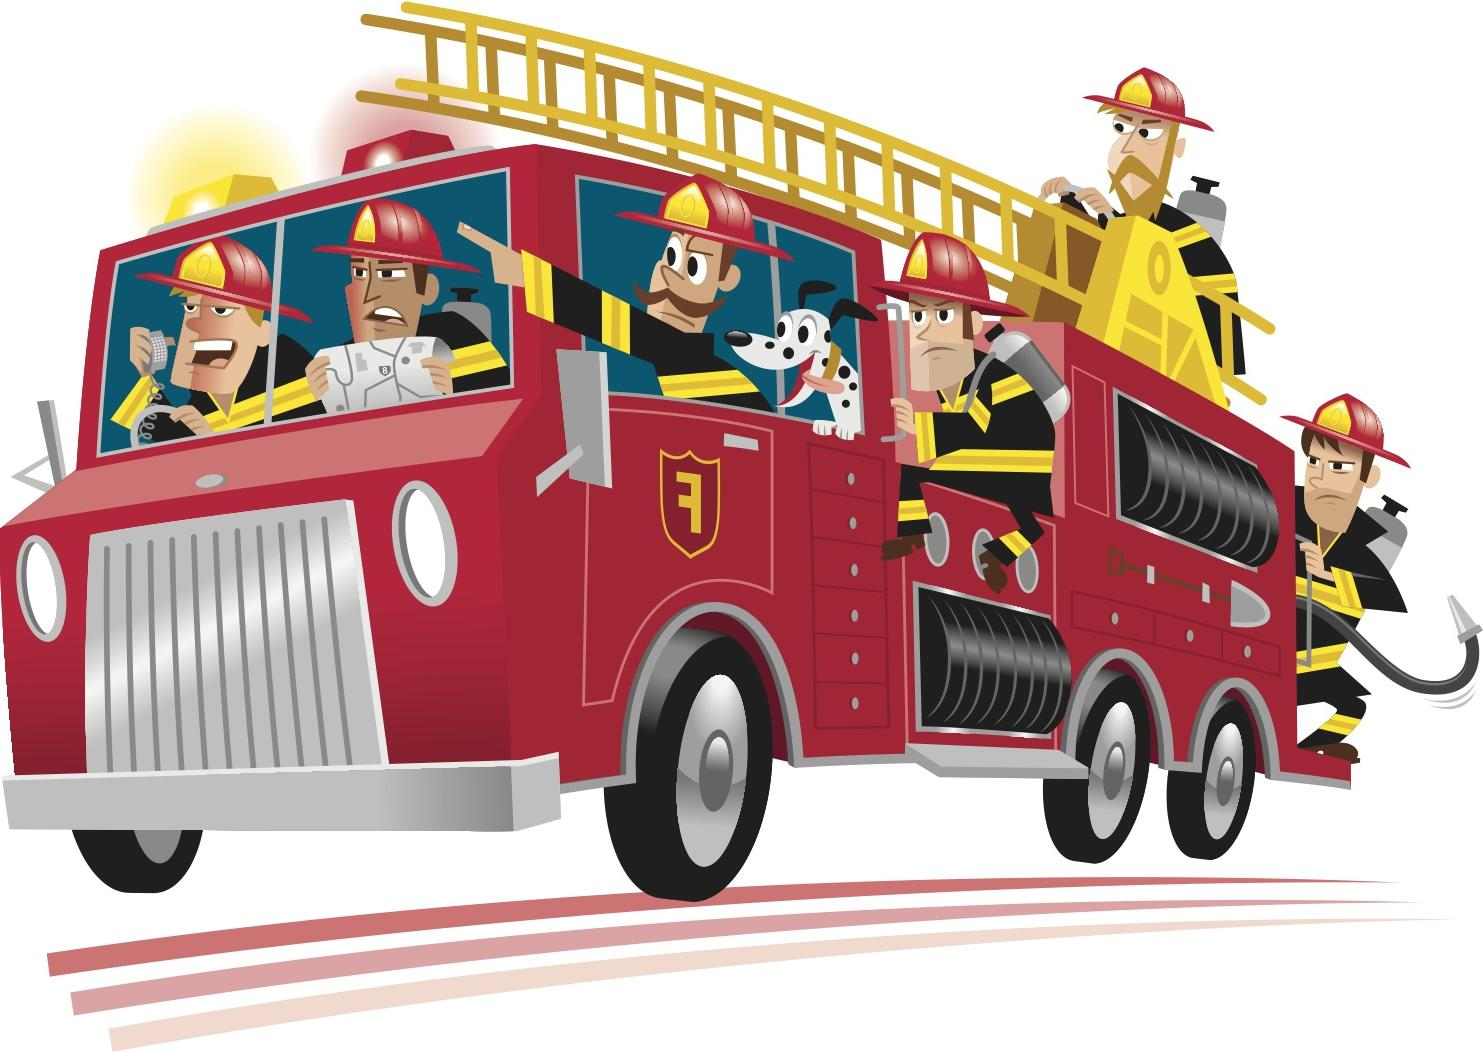 Fire truck clipart 6 » Clipart Station.